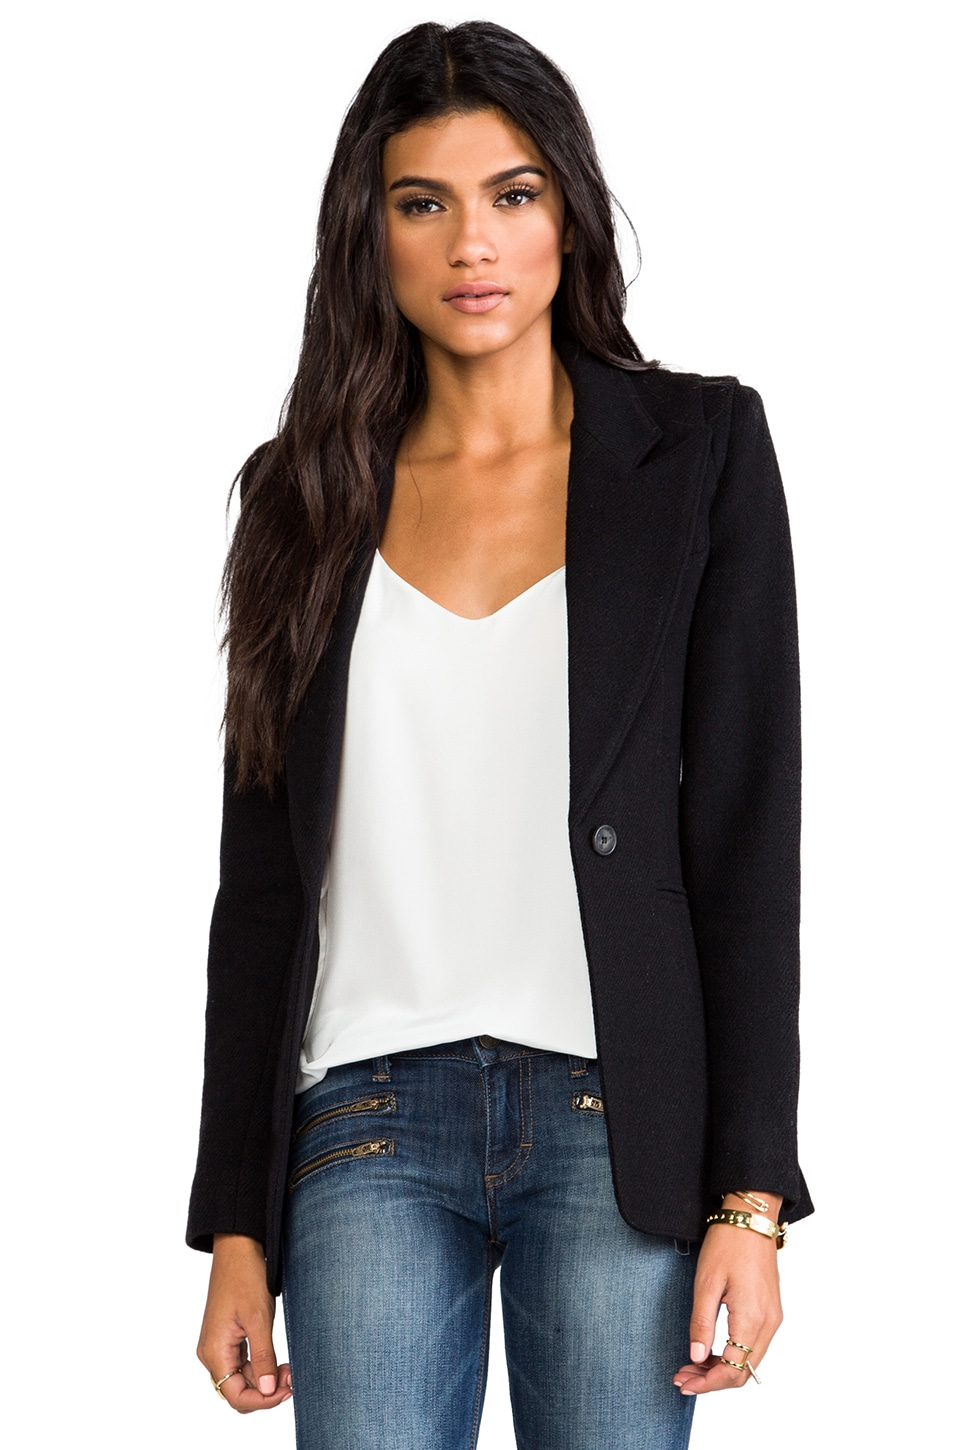 Smythe Hourglass Blazer in Black